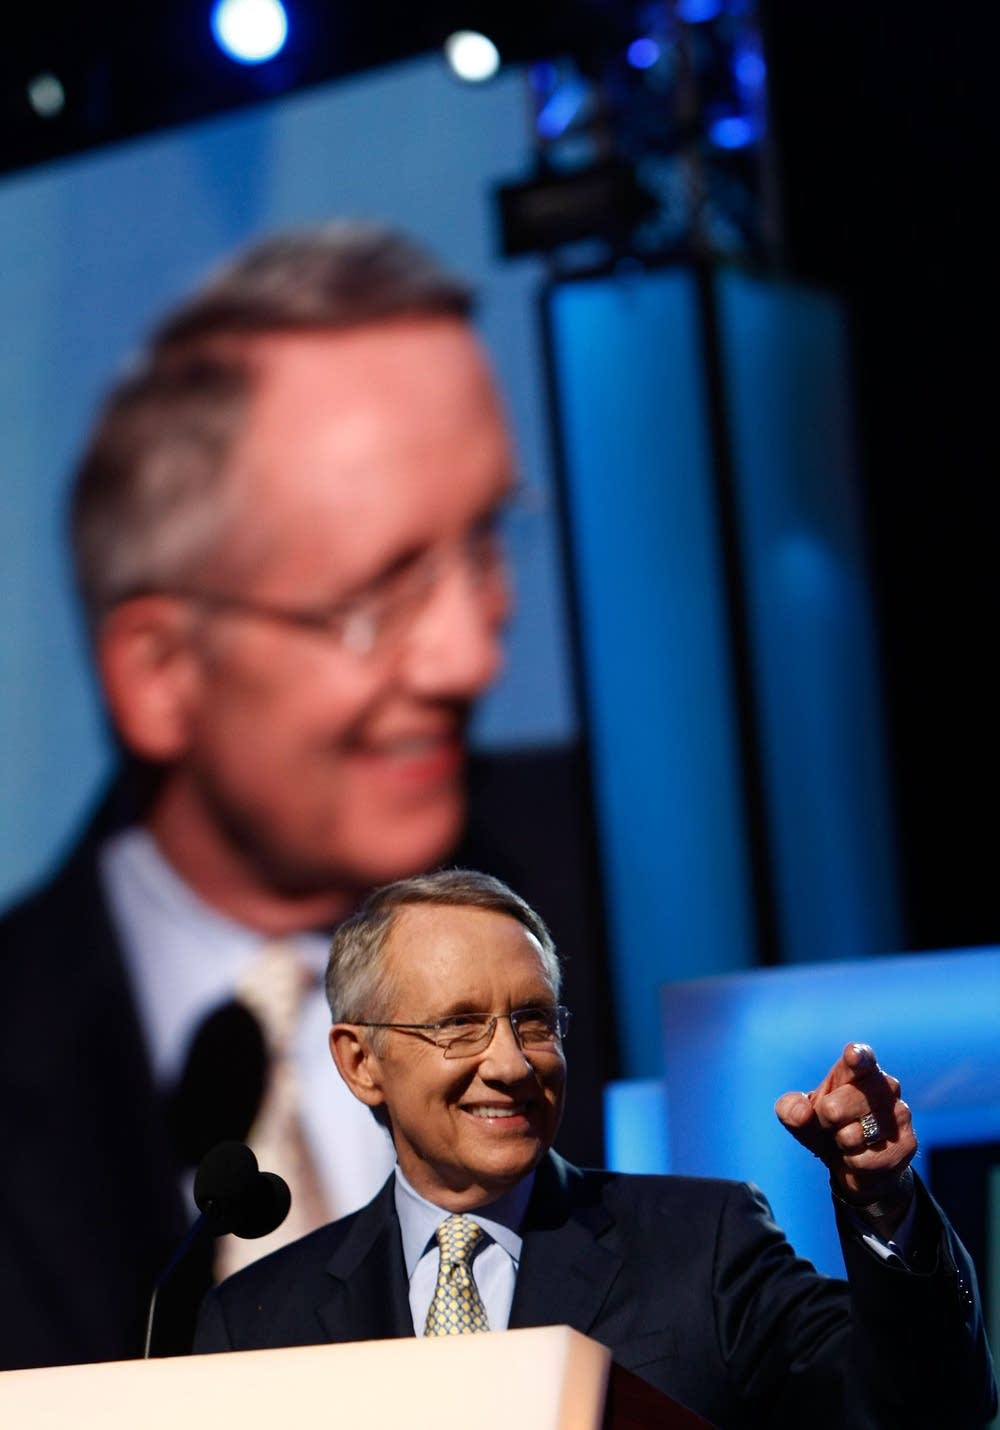 Harry Reid (D-NV ) speaks on day three of the DNC